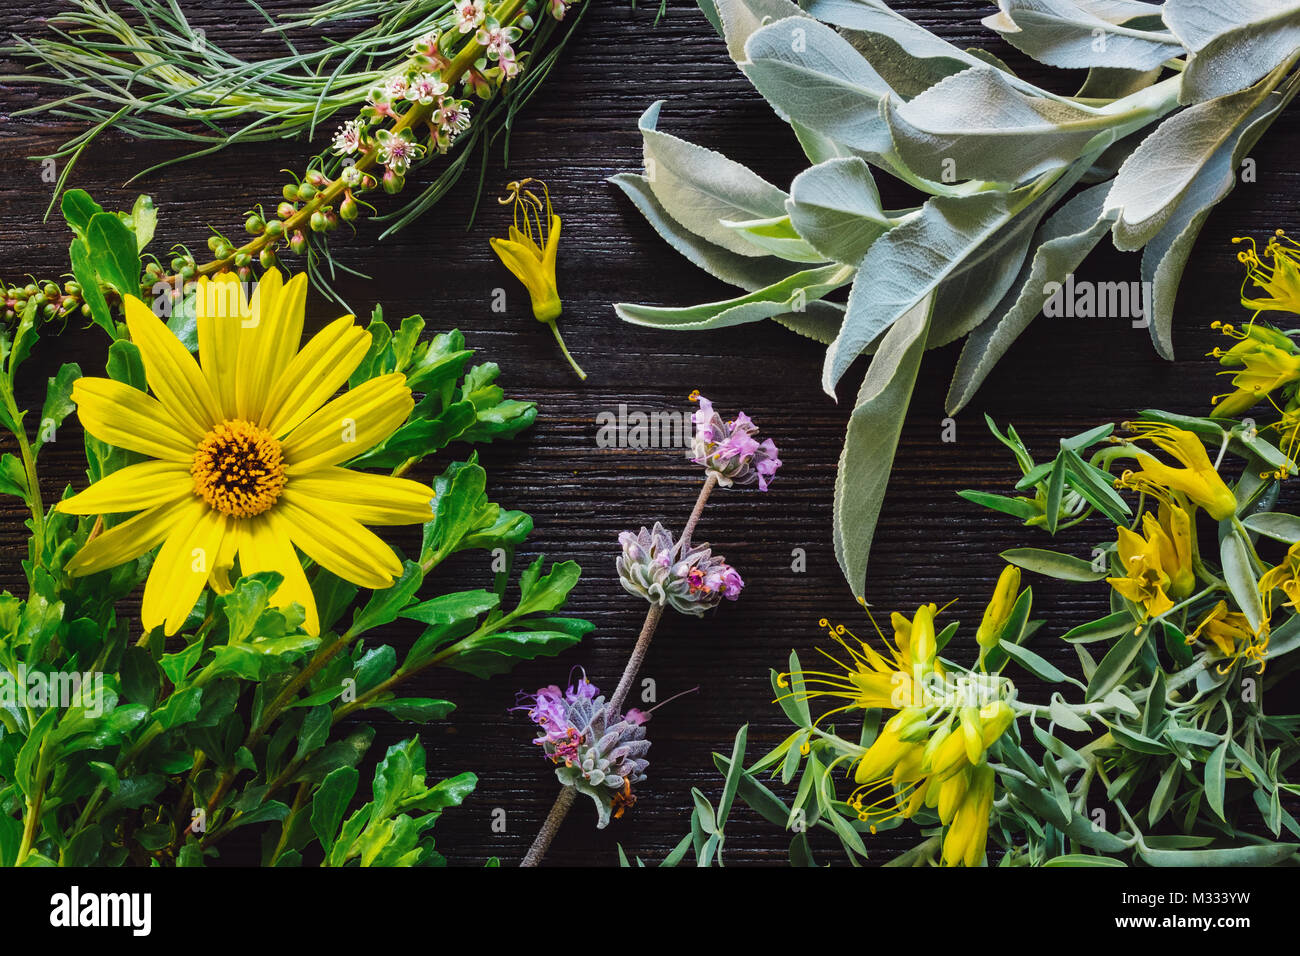 A Collection of California Native Plants on Dark Table - Stock Image